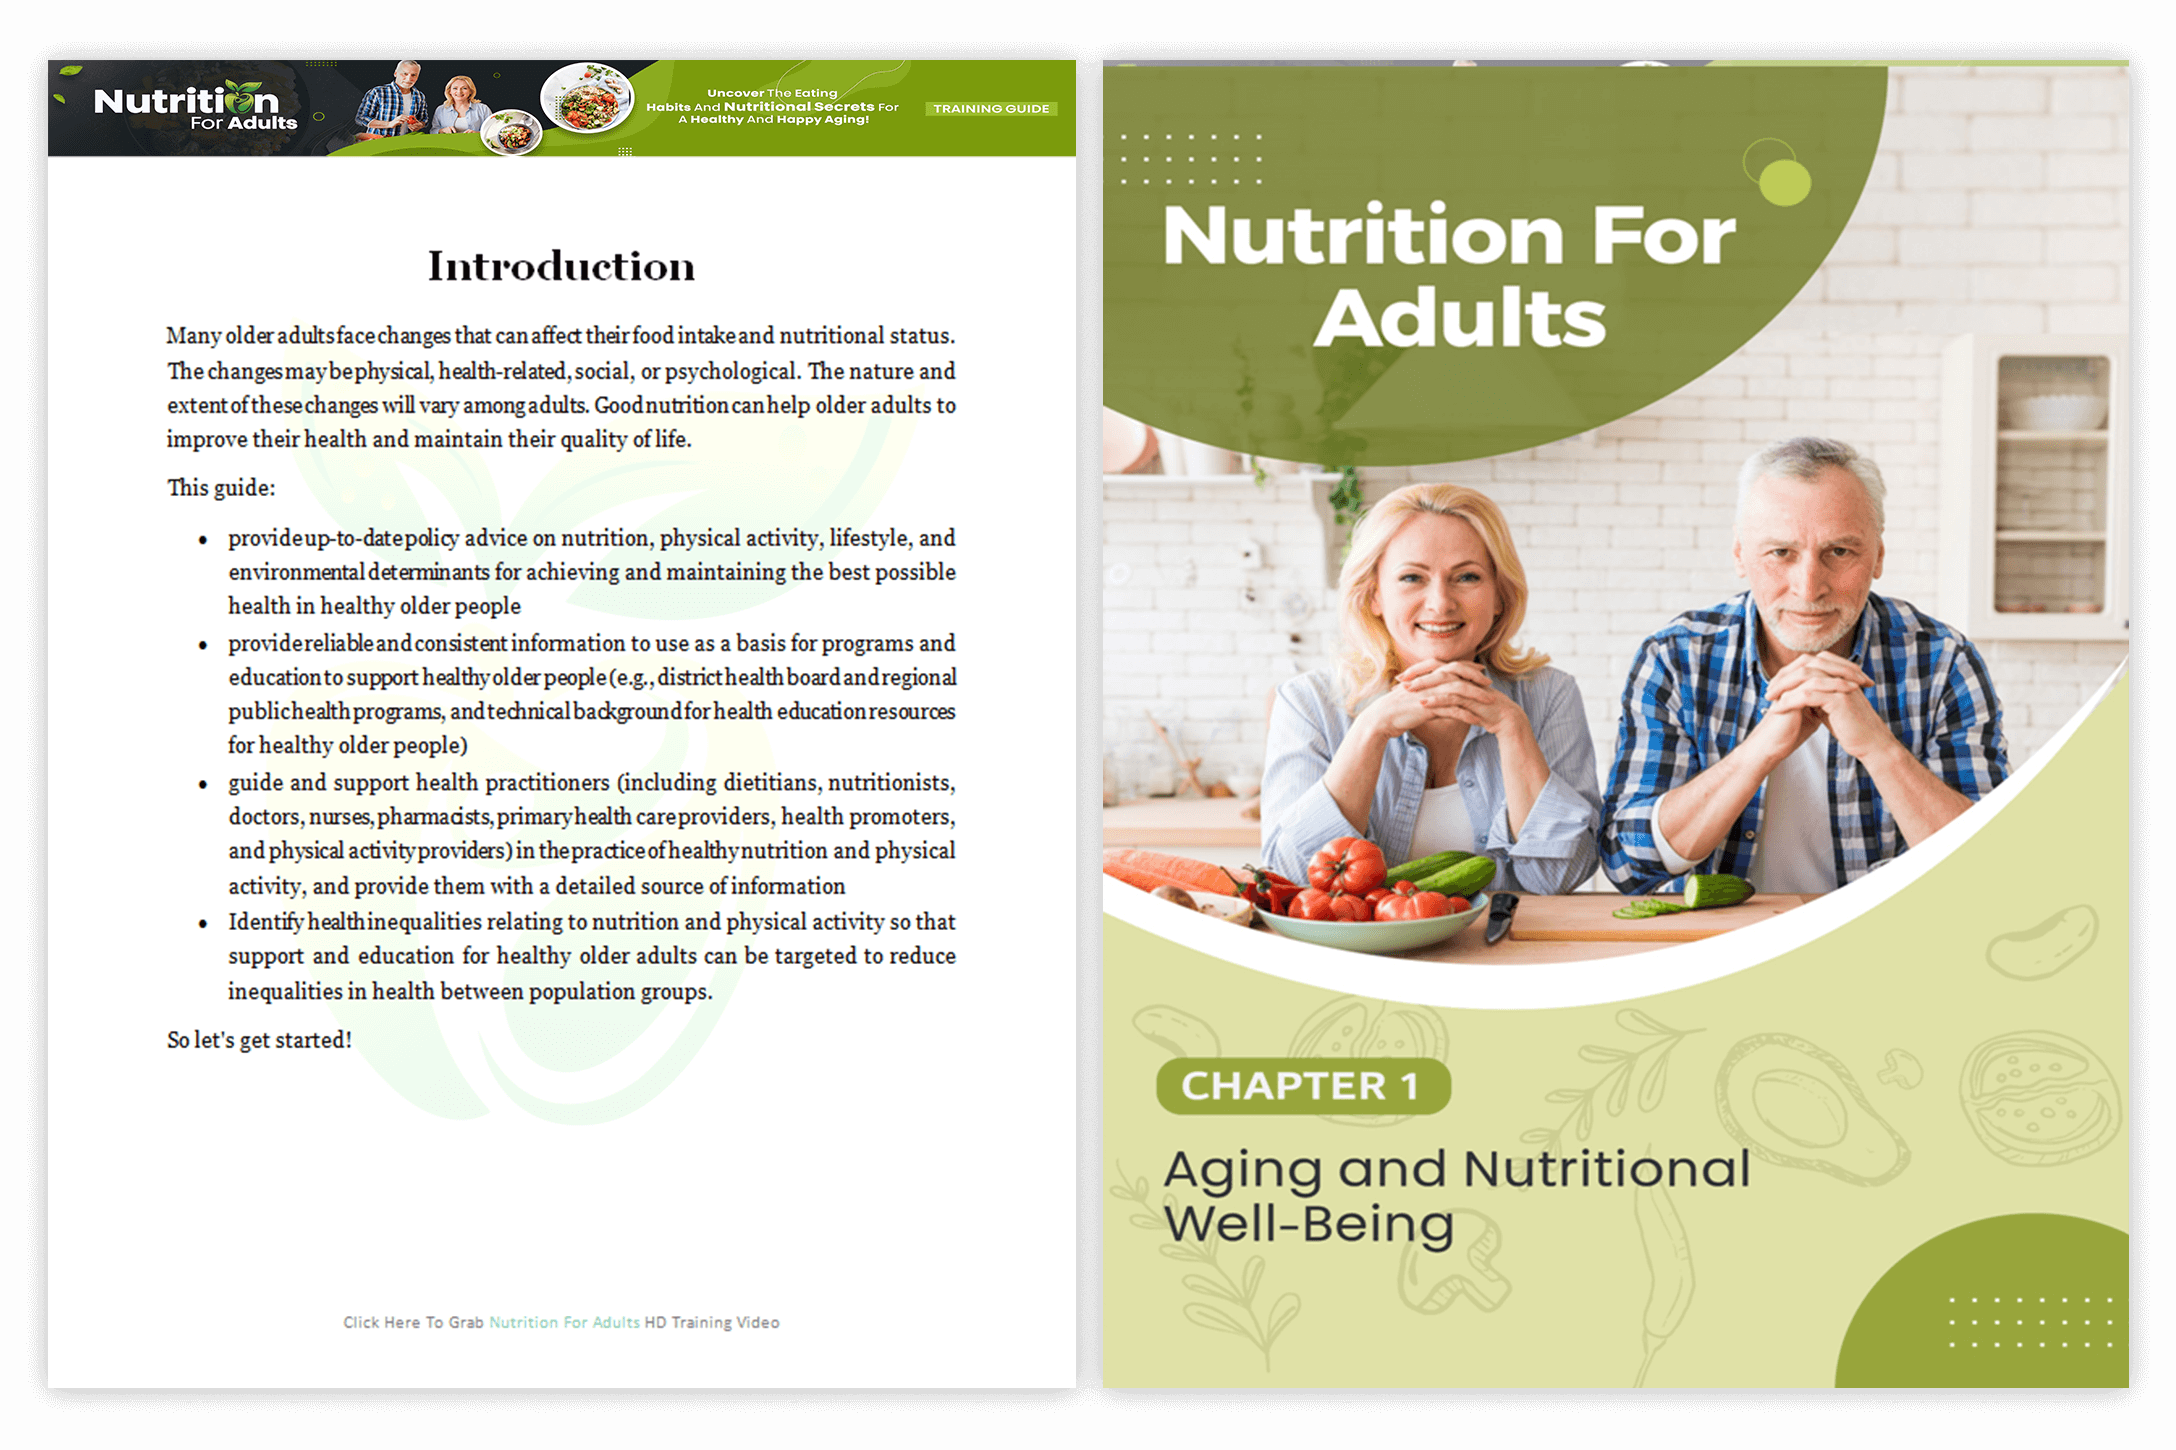 Module 1 Nutrition For Adults PLR